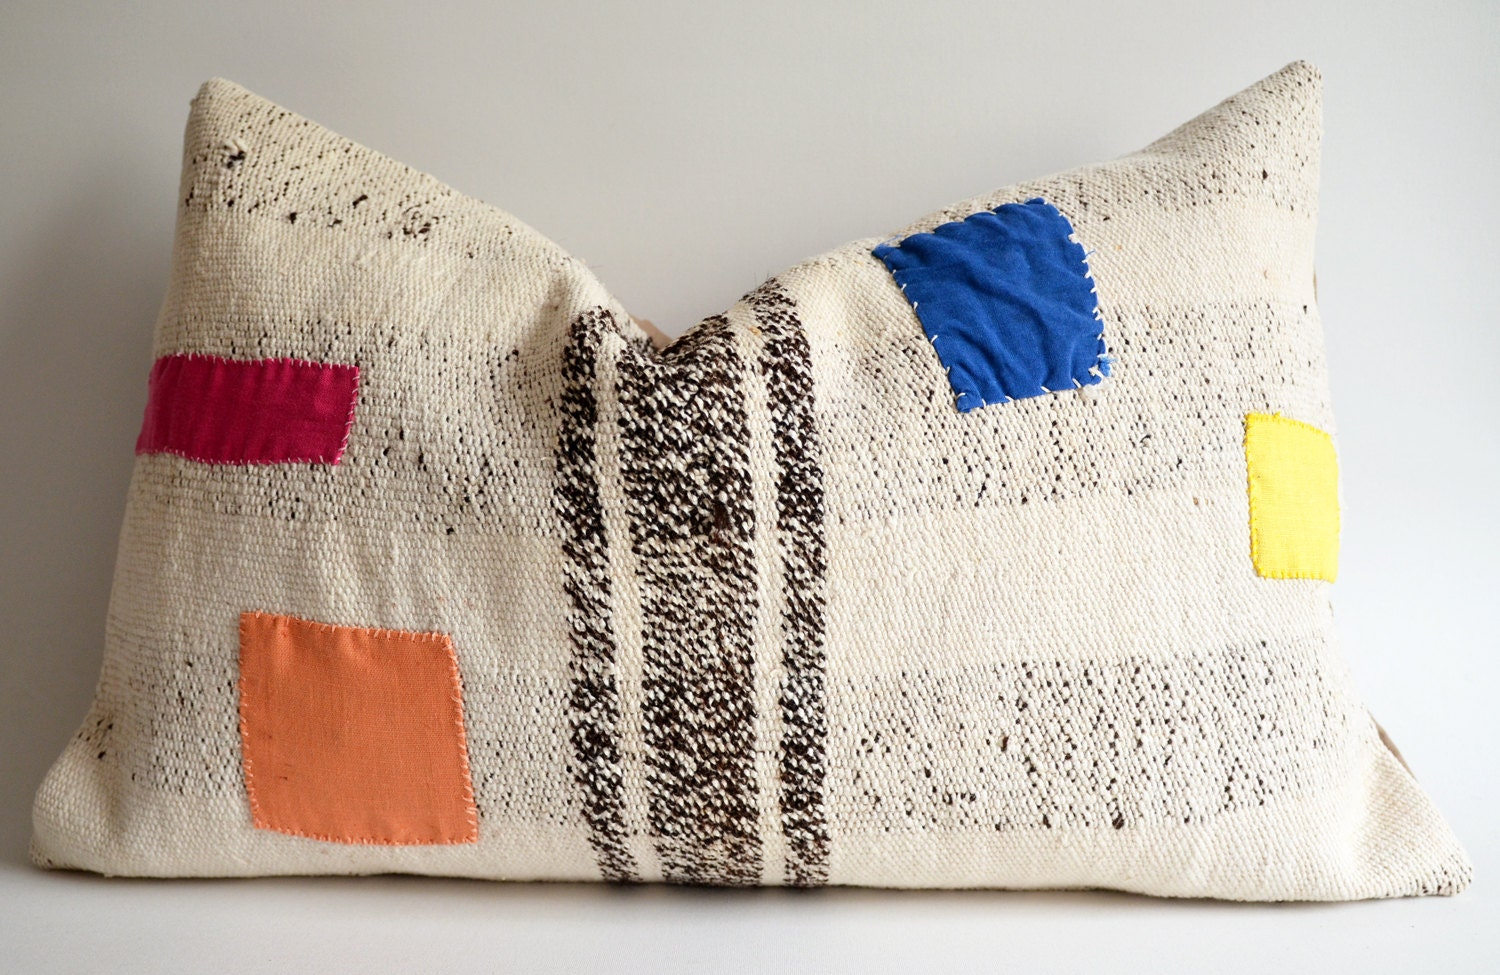 Sukan / Handwoven Vintage Kilim Pillow Covers Bolster Pillow Cover Lumbar Pillow Cover Euro Sham - sukan